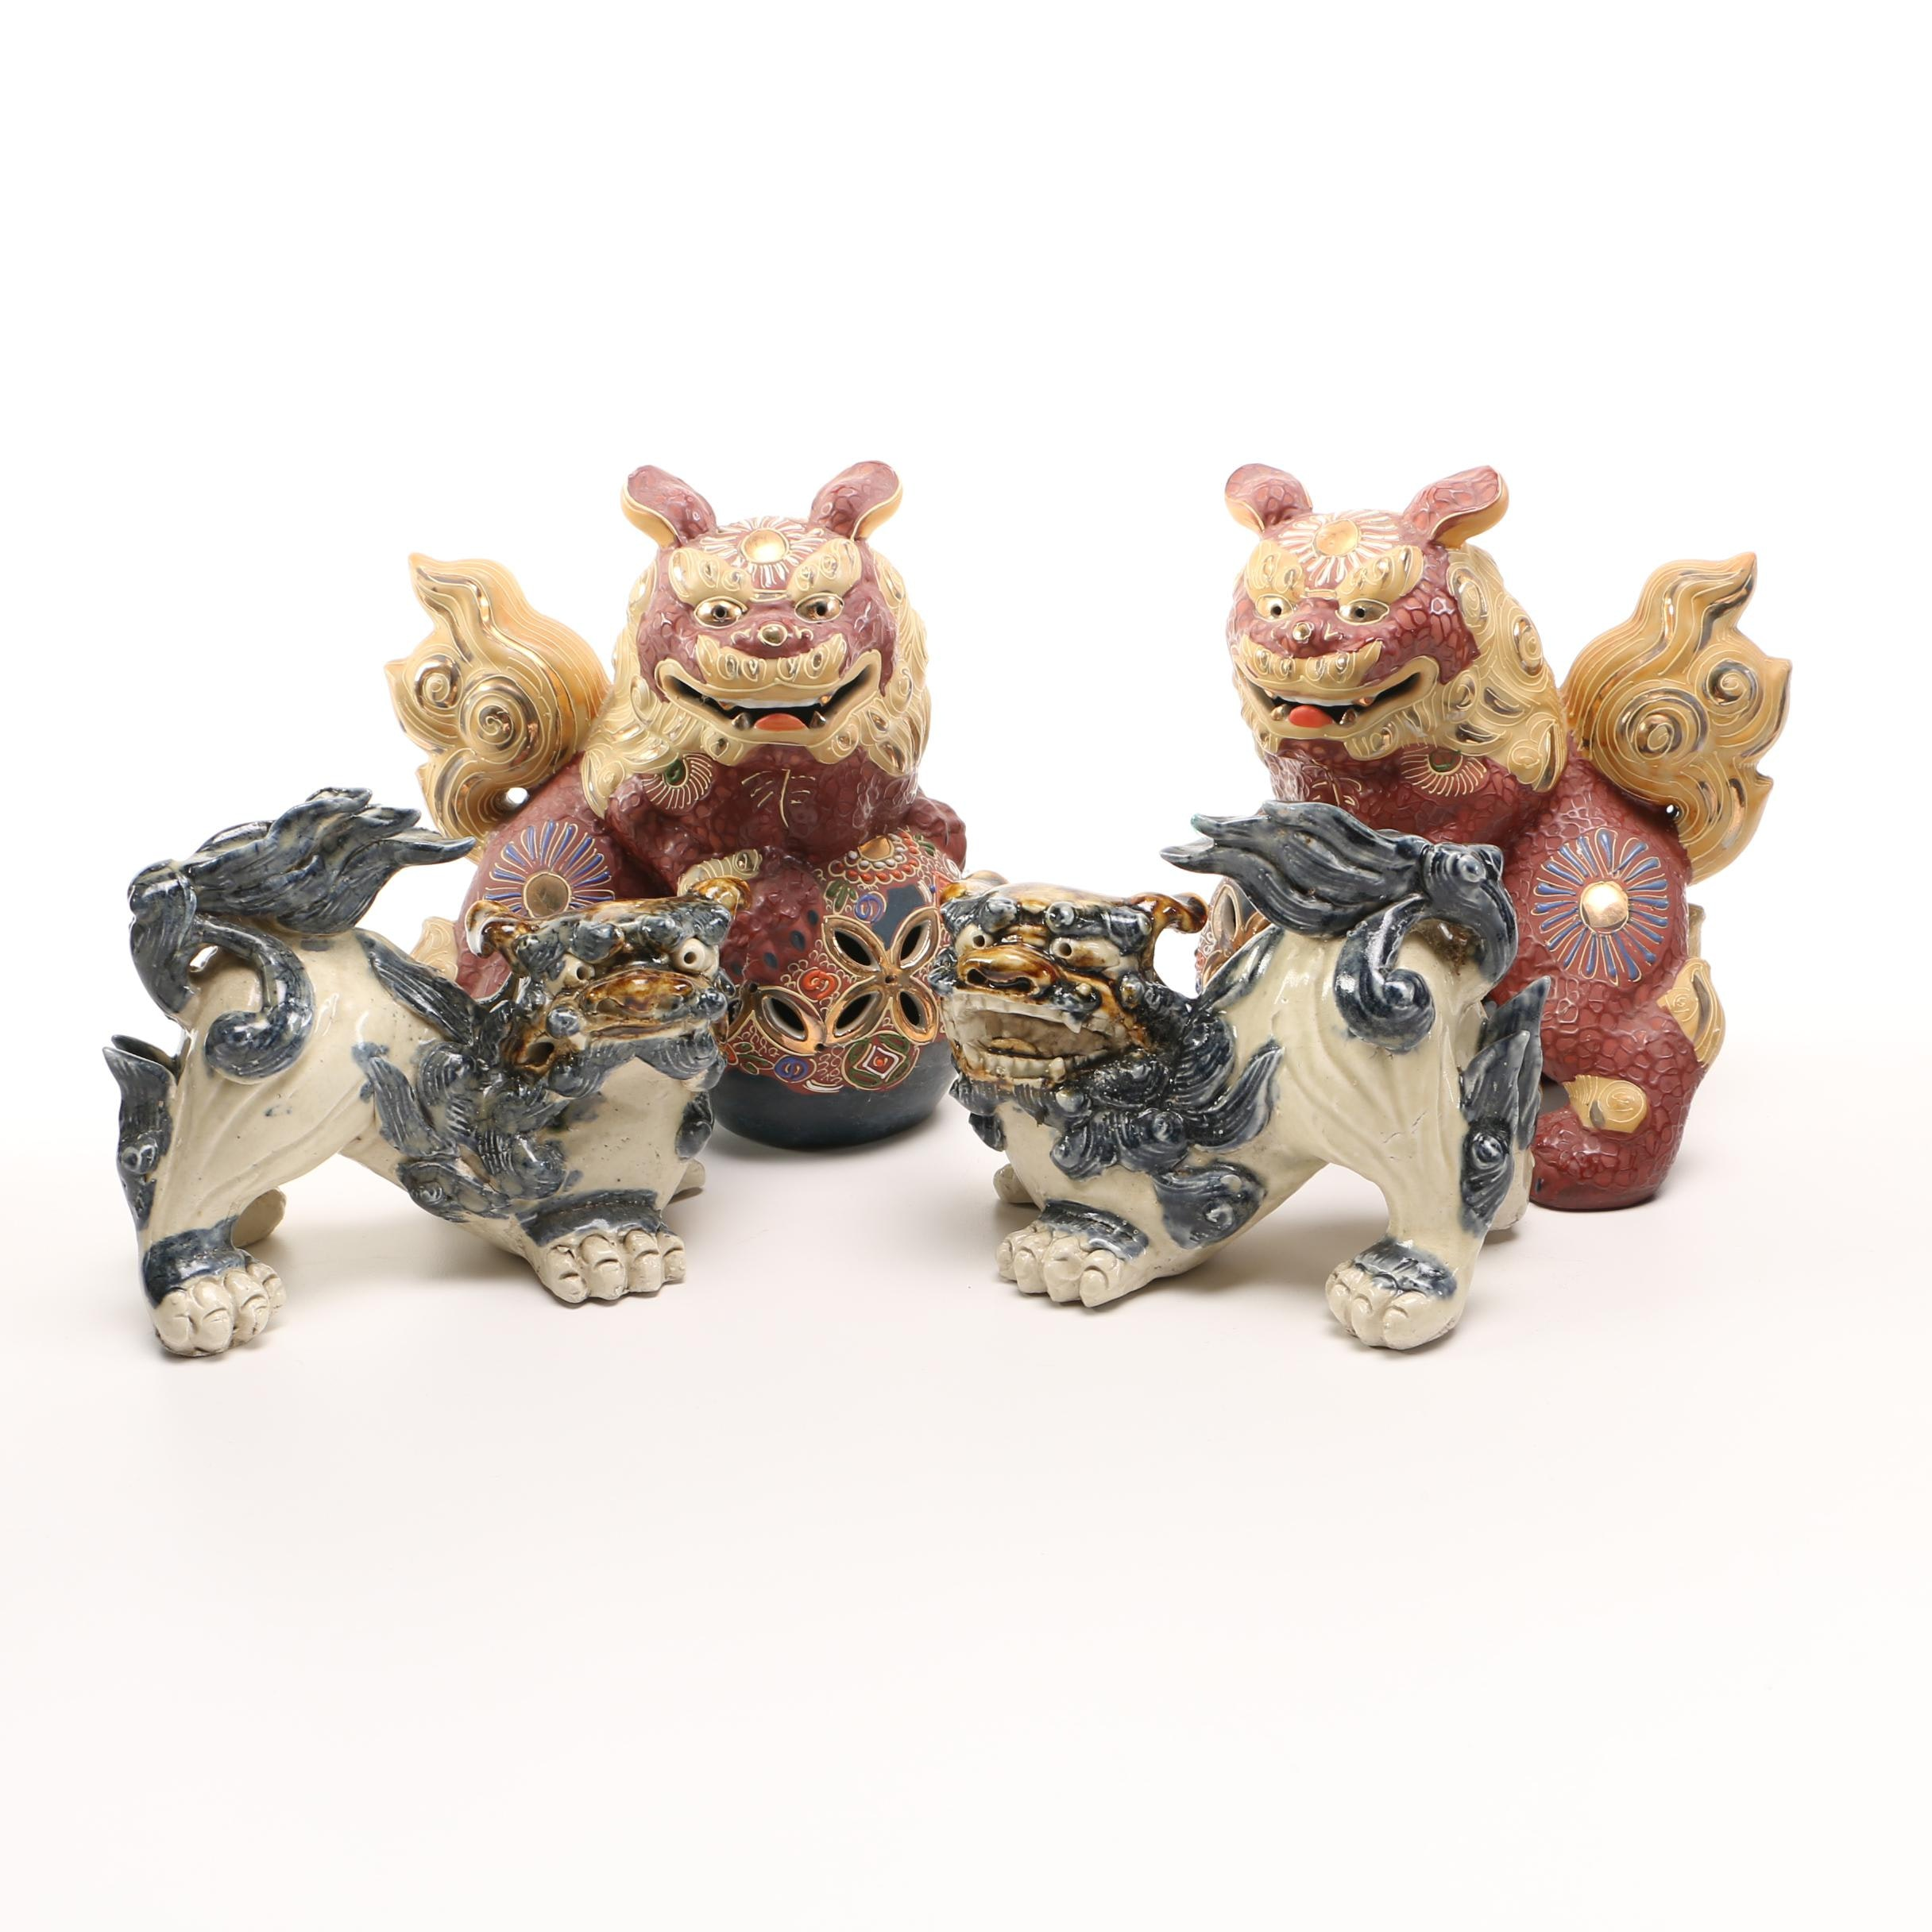 East Asian Inspired Ceramic Guardian Lion Figurines